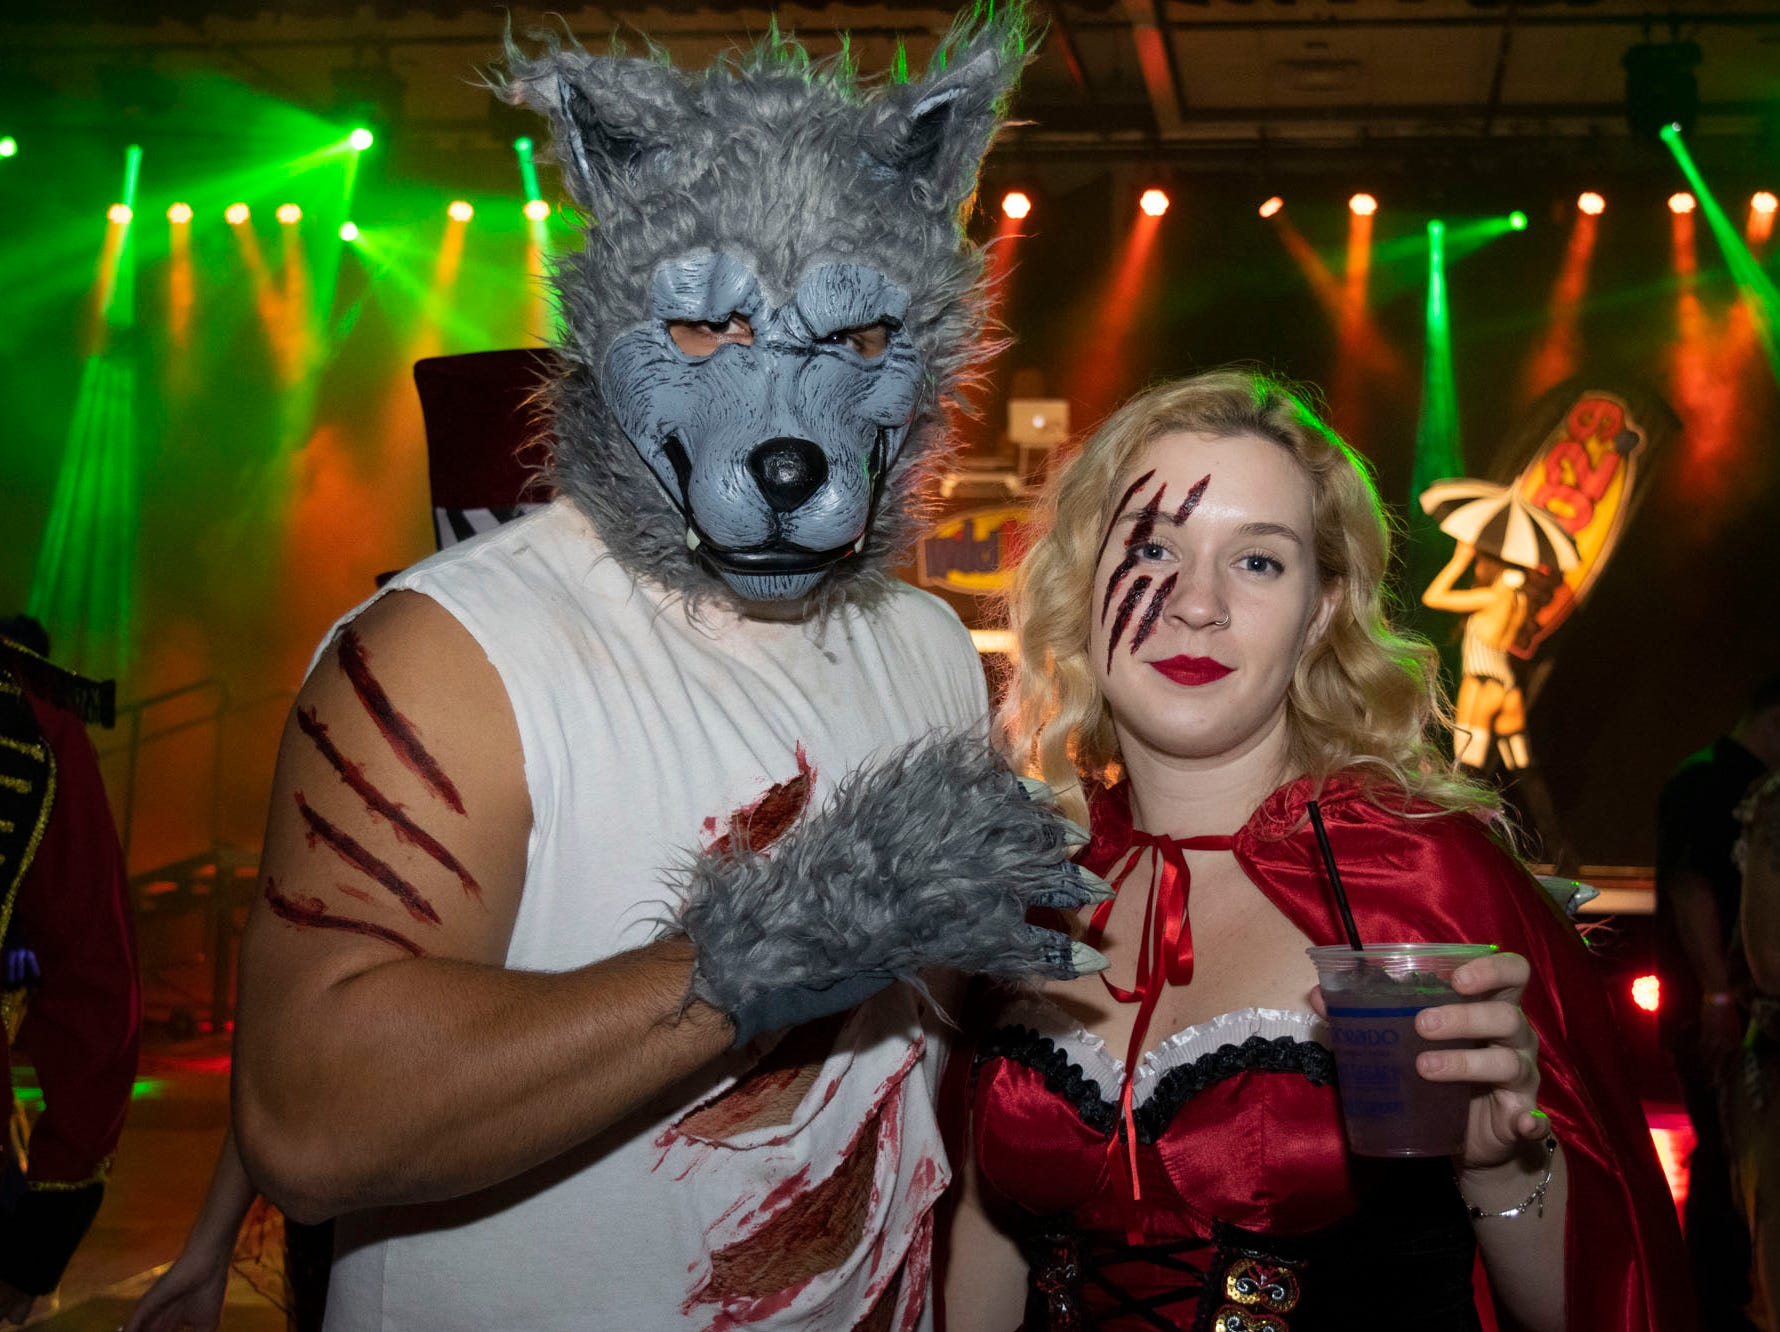 Andrew Anaya and Kristin White attend the Wild Erotic Ball on Friday, Oct. 26, 2018, inside the Silver Legacy Casino. Reno, Nev.